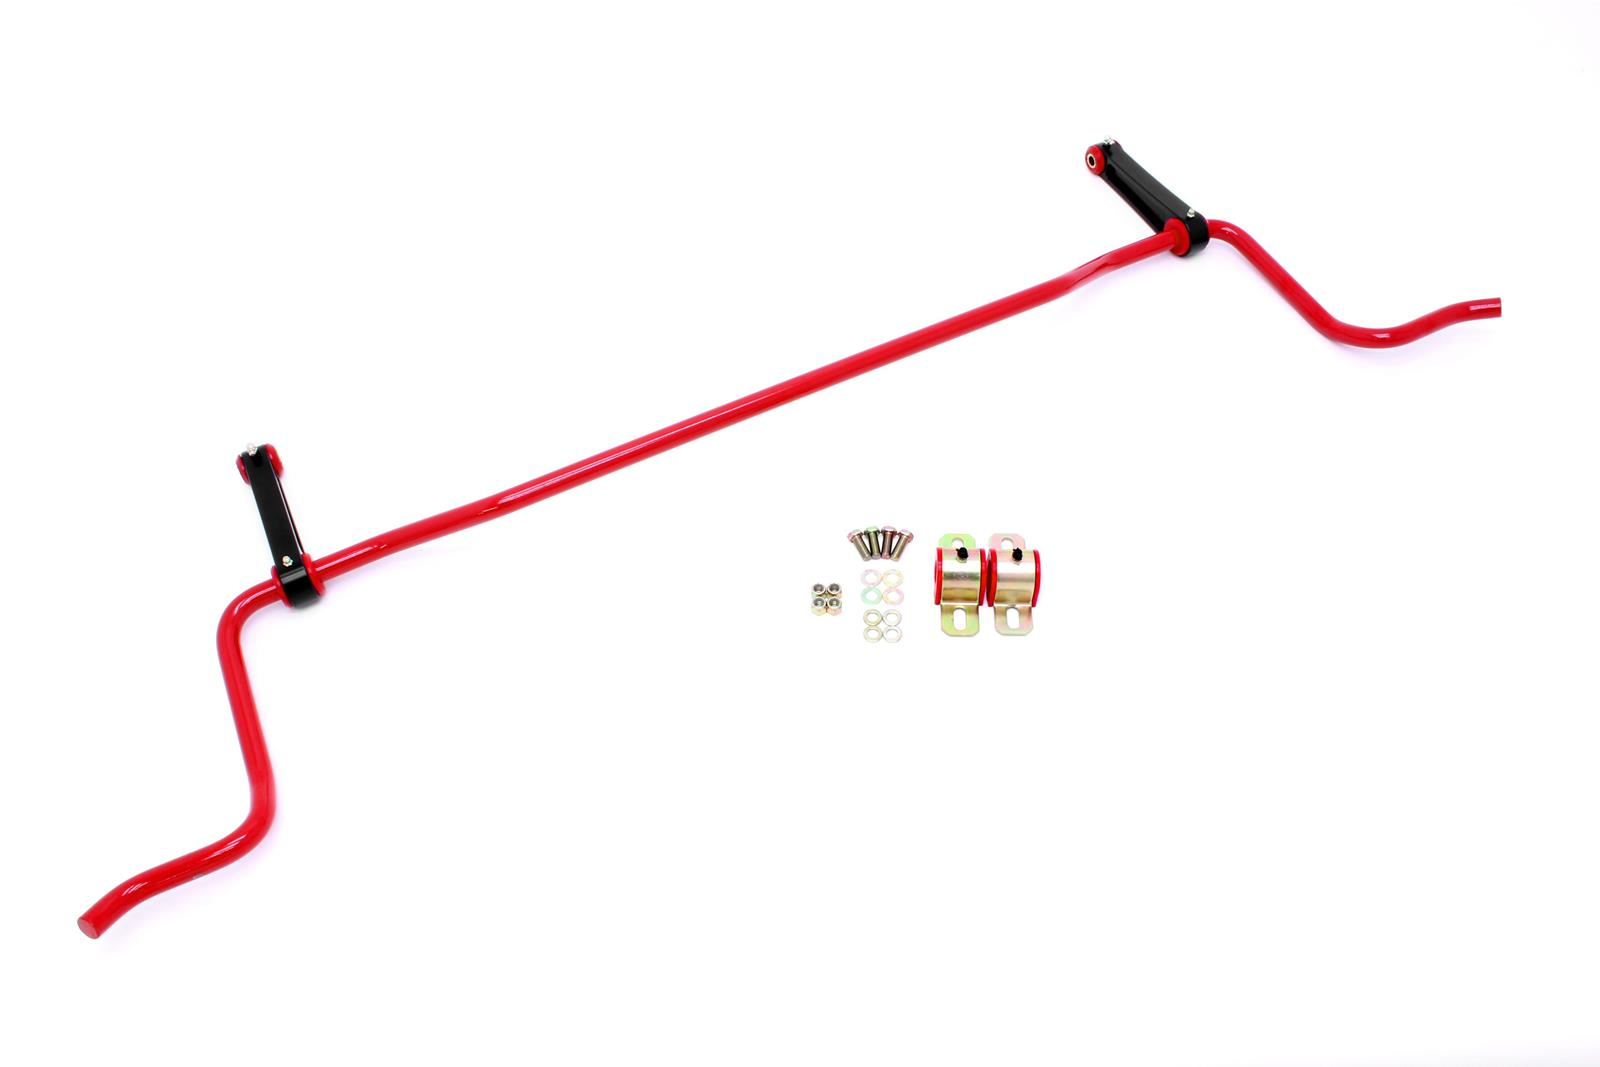 230 Bobcat Tractor Adjustable Stabilizer Bar : Ford mustang bmr sway bars sb r free shipping on